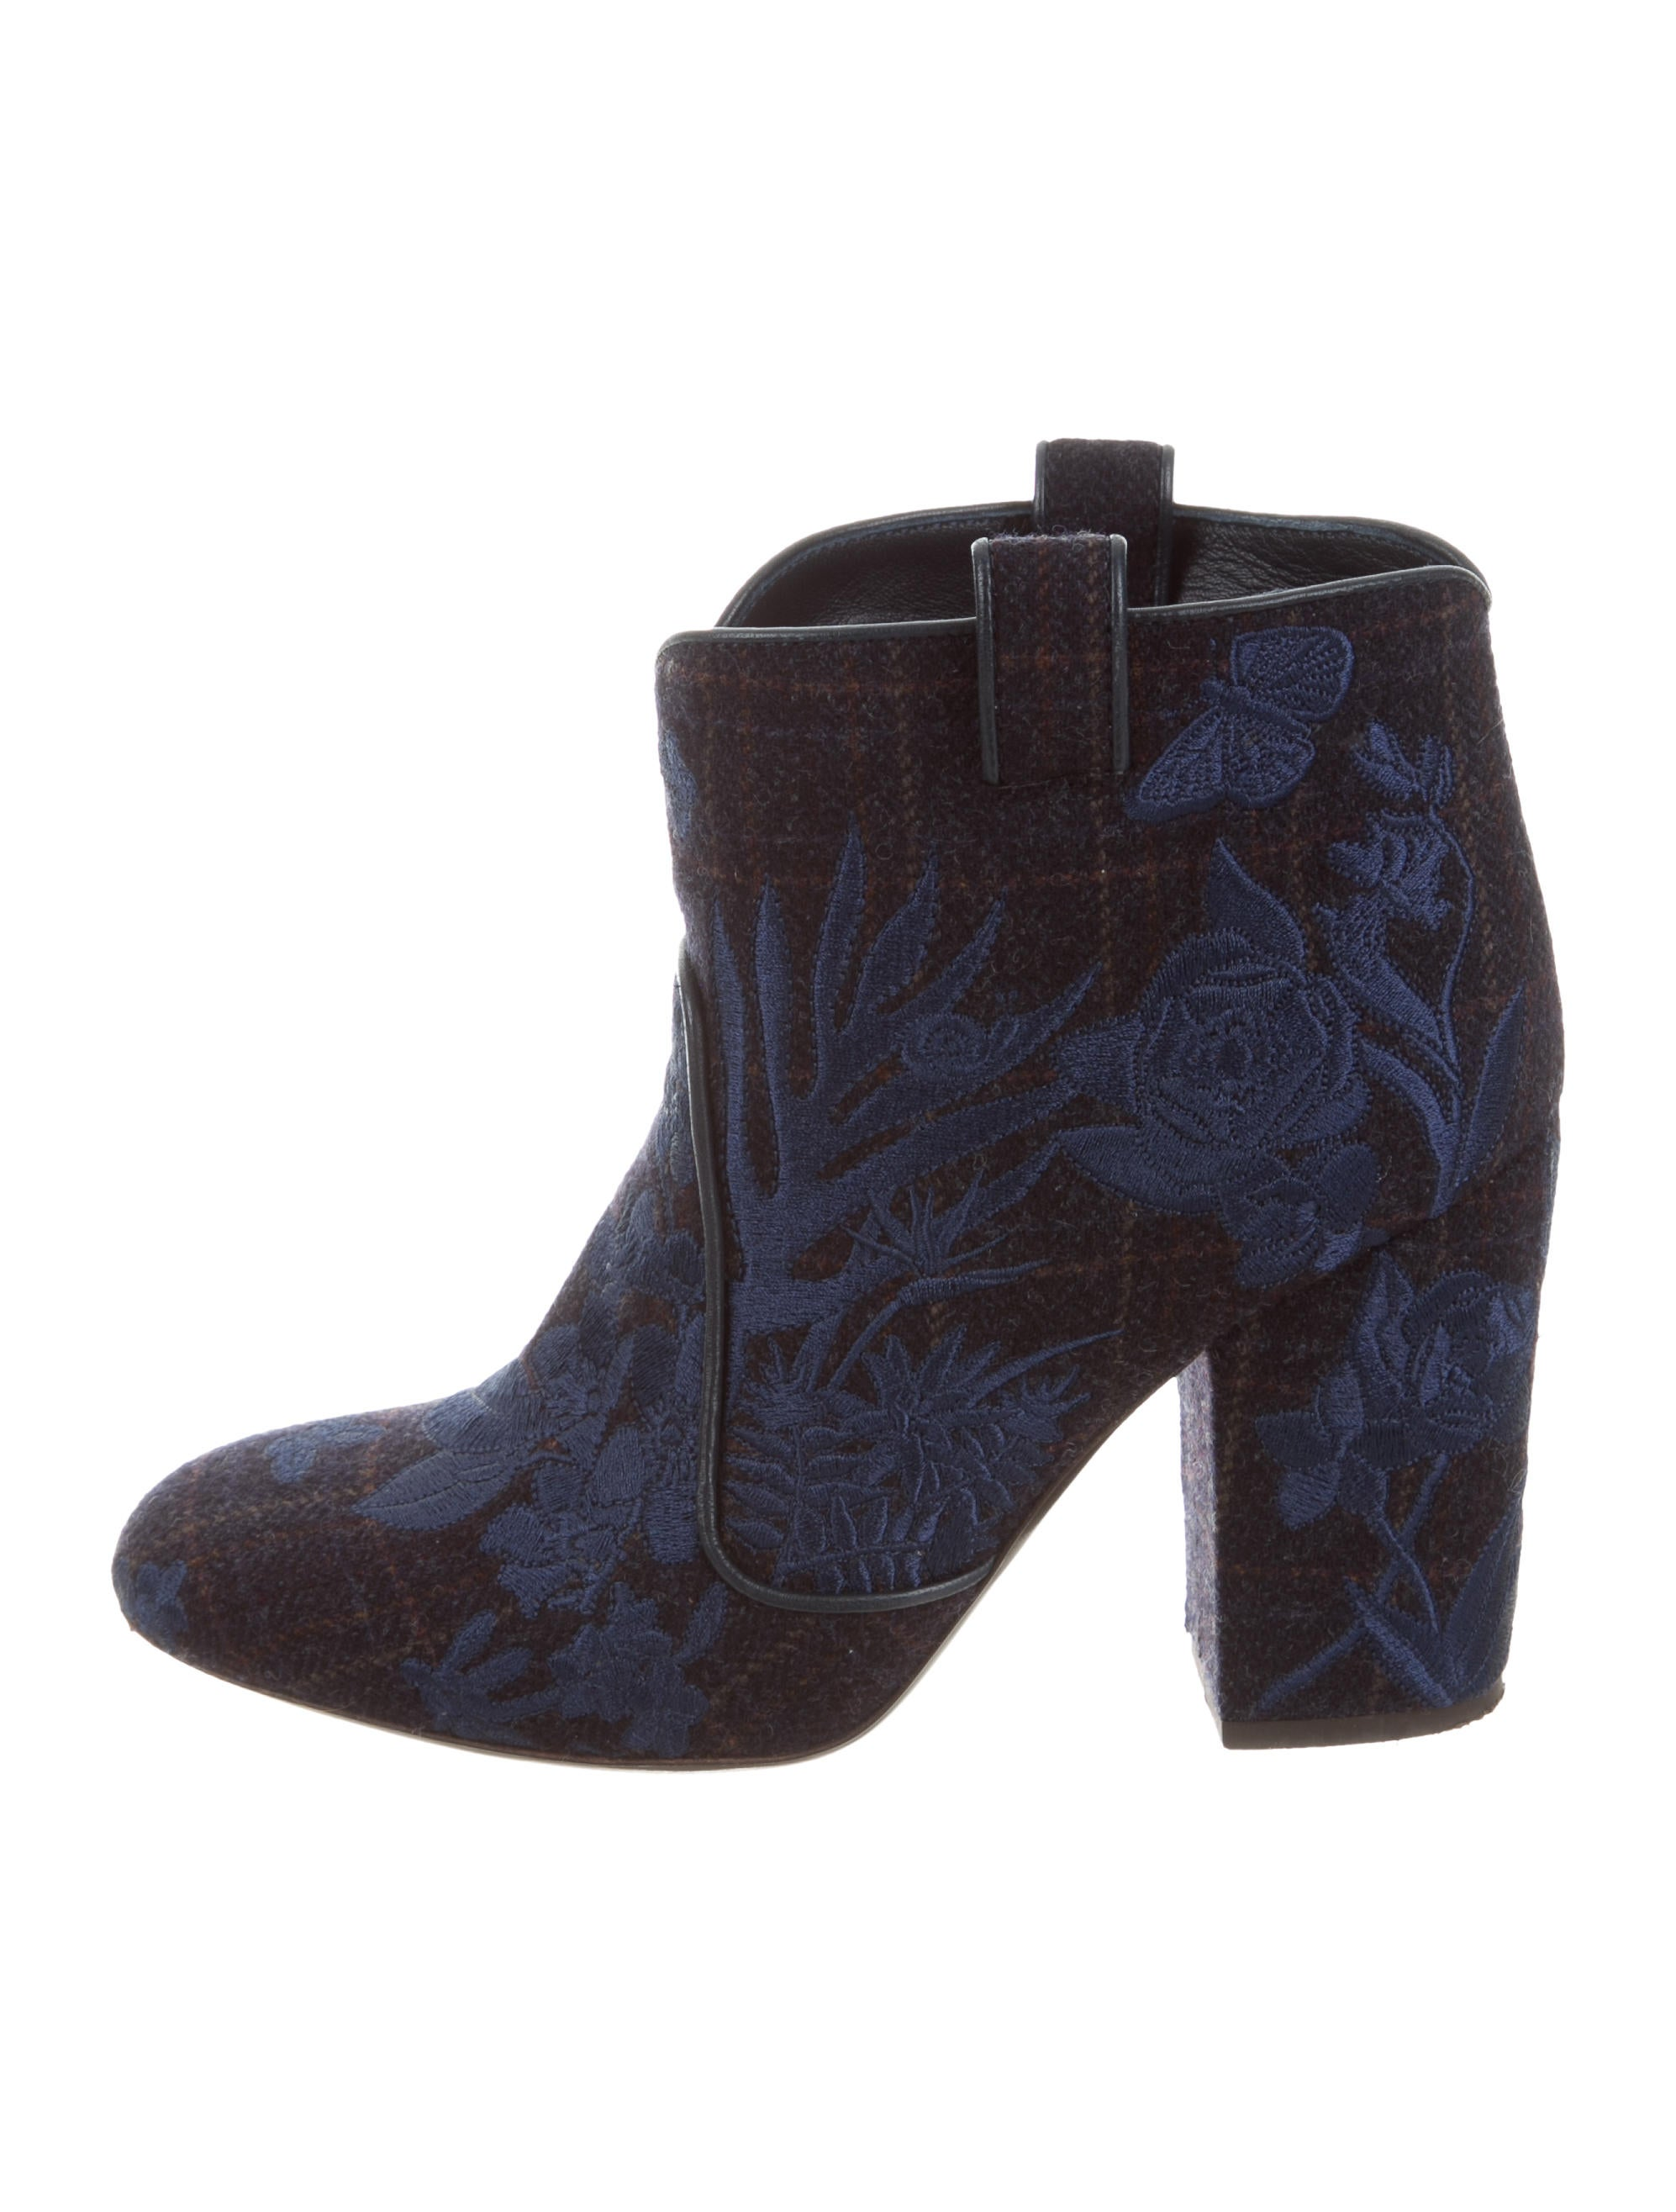 free shipping pay with paypal Laurence Dacade Embroidered Felt Boots big discount online J46f0uOl